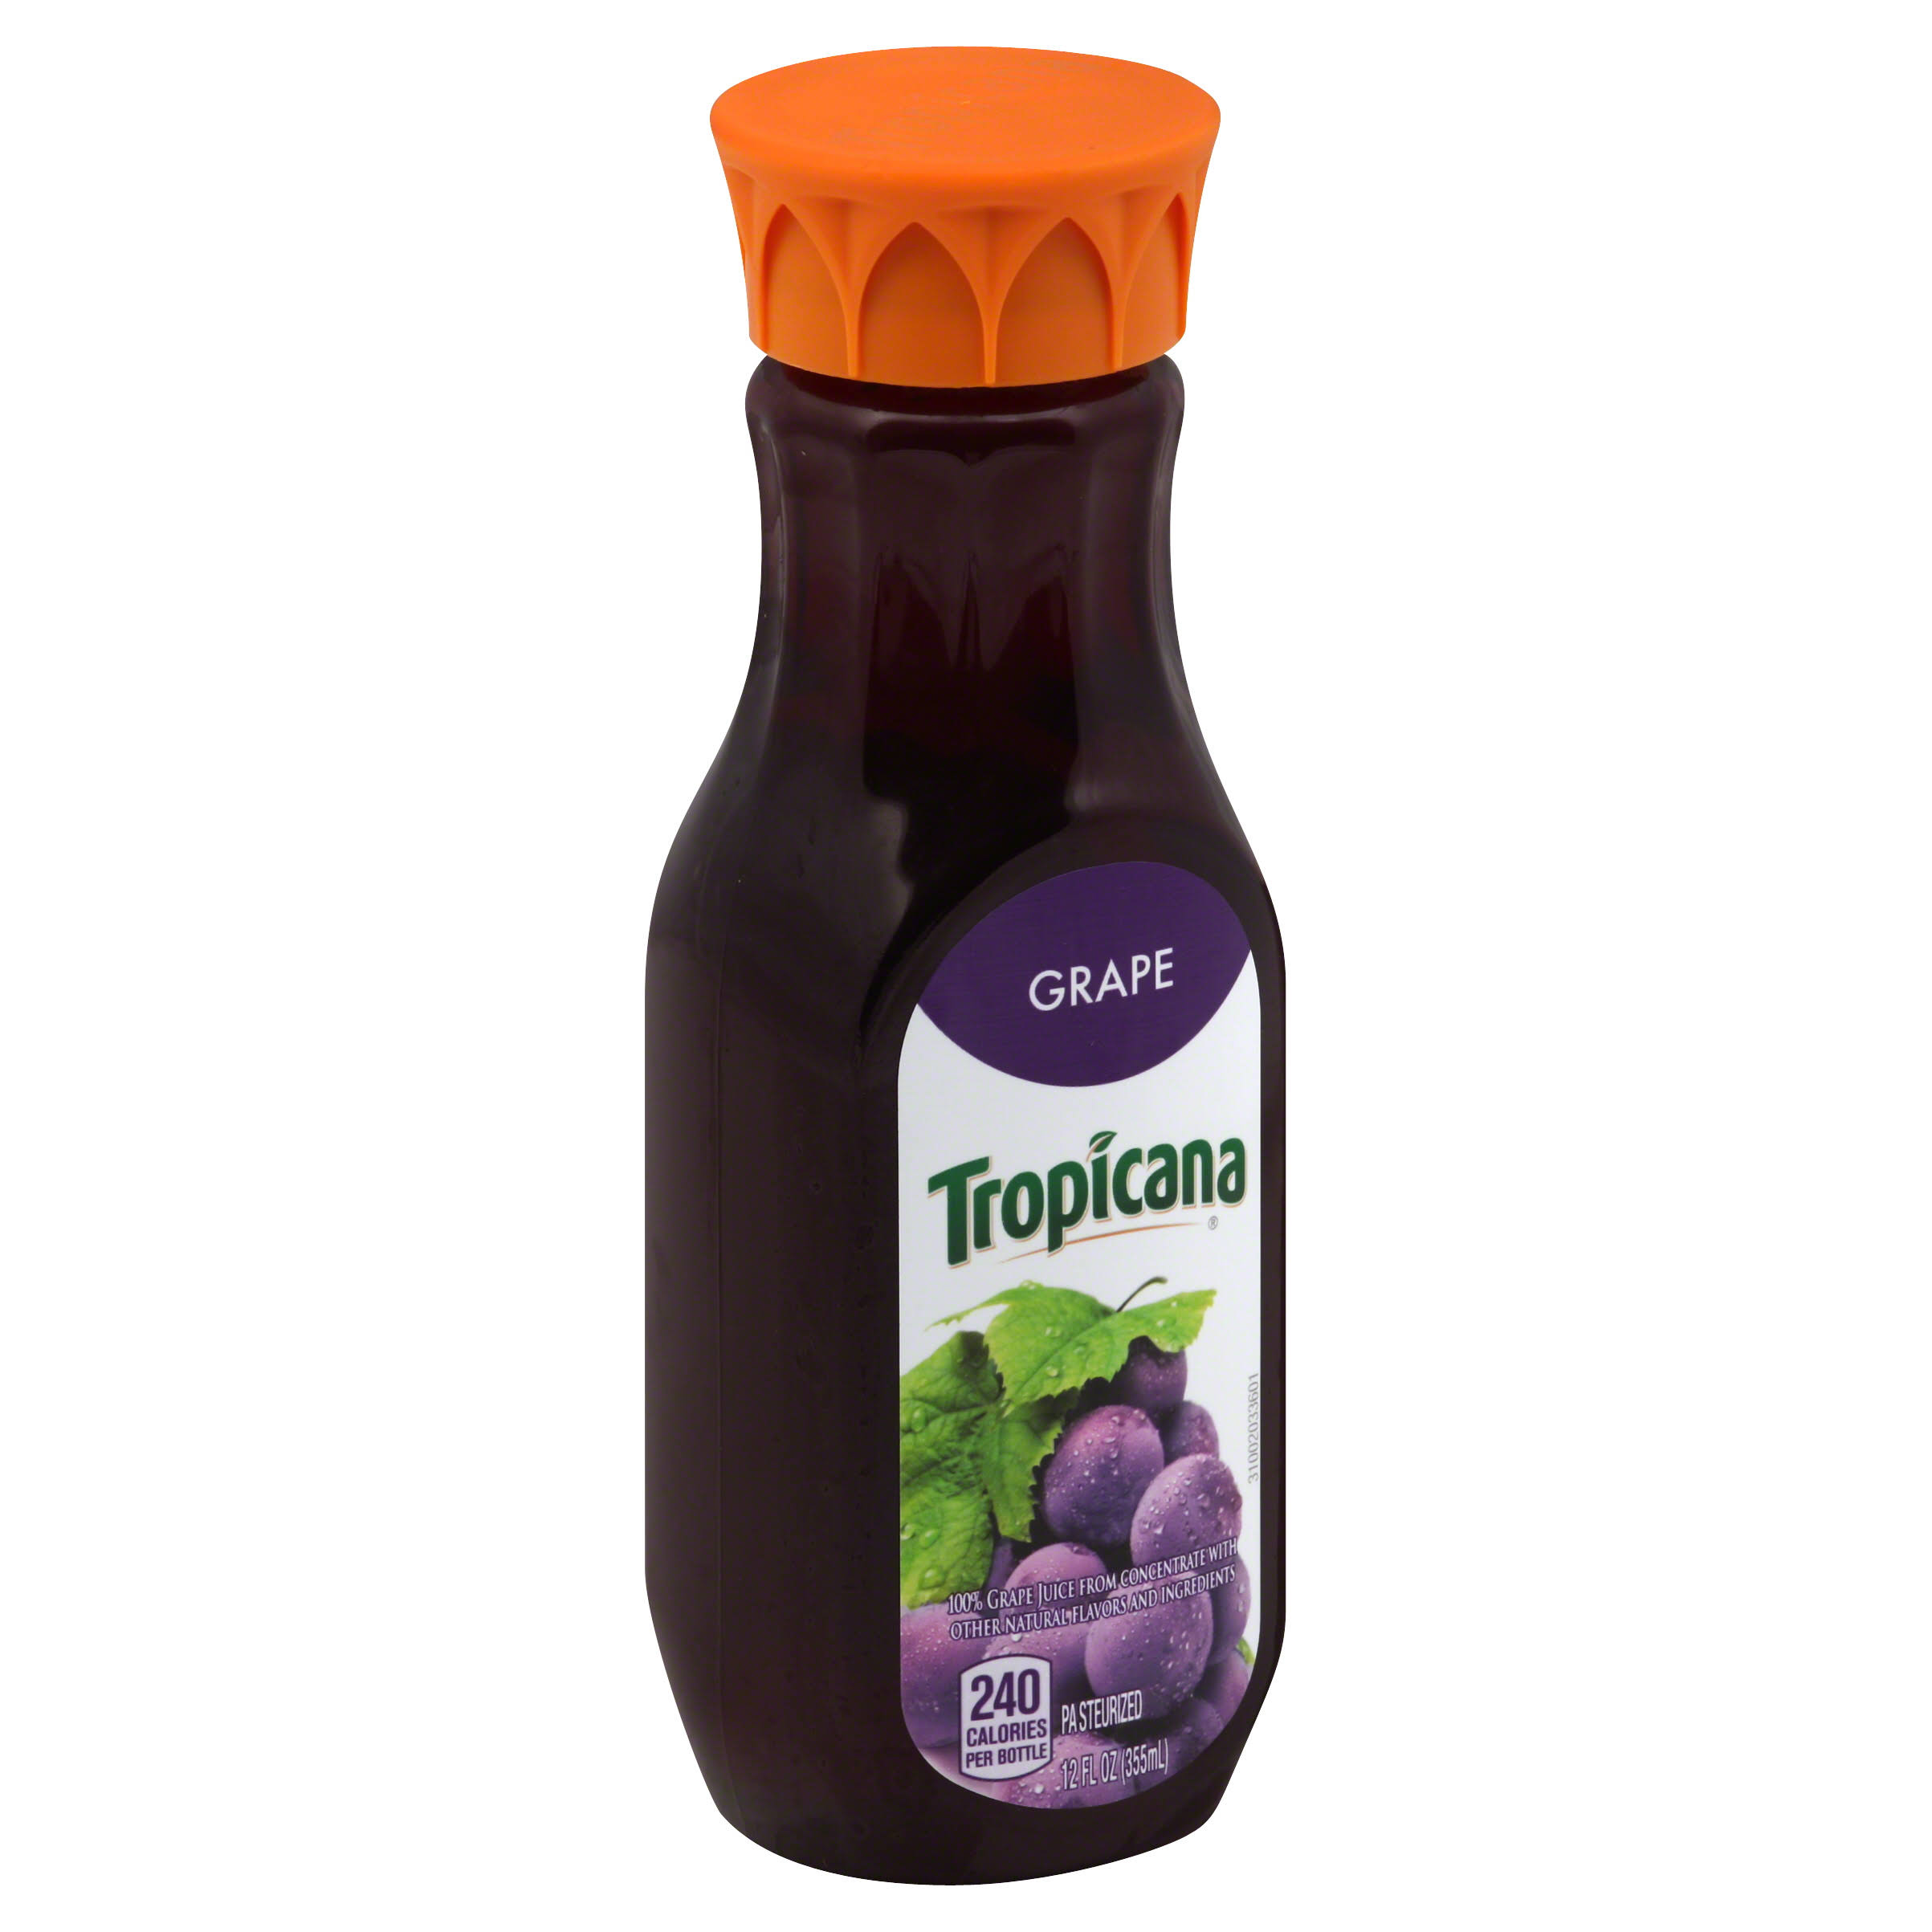 Tropicana Pure Premium Juice - Grape, 12oz